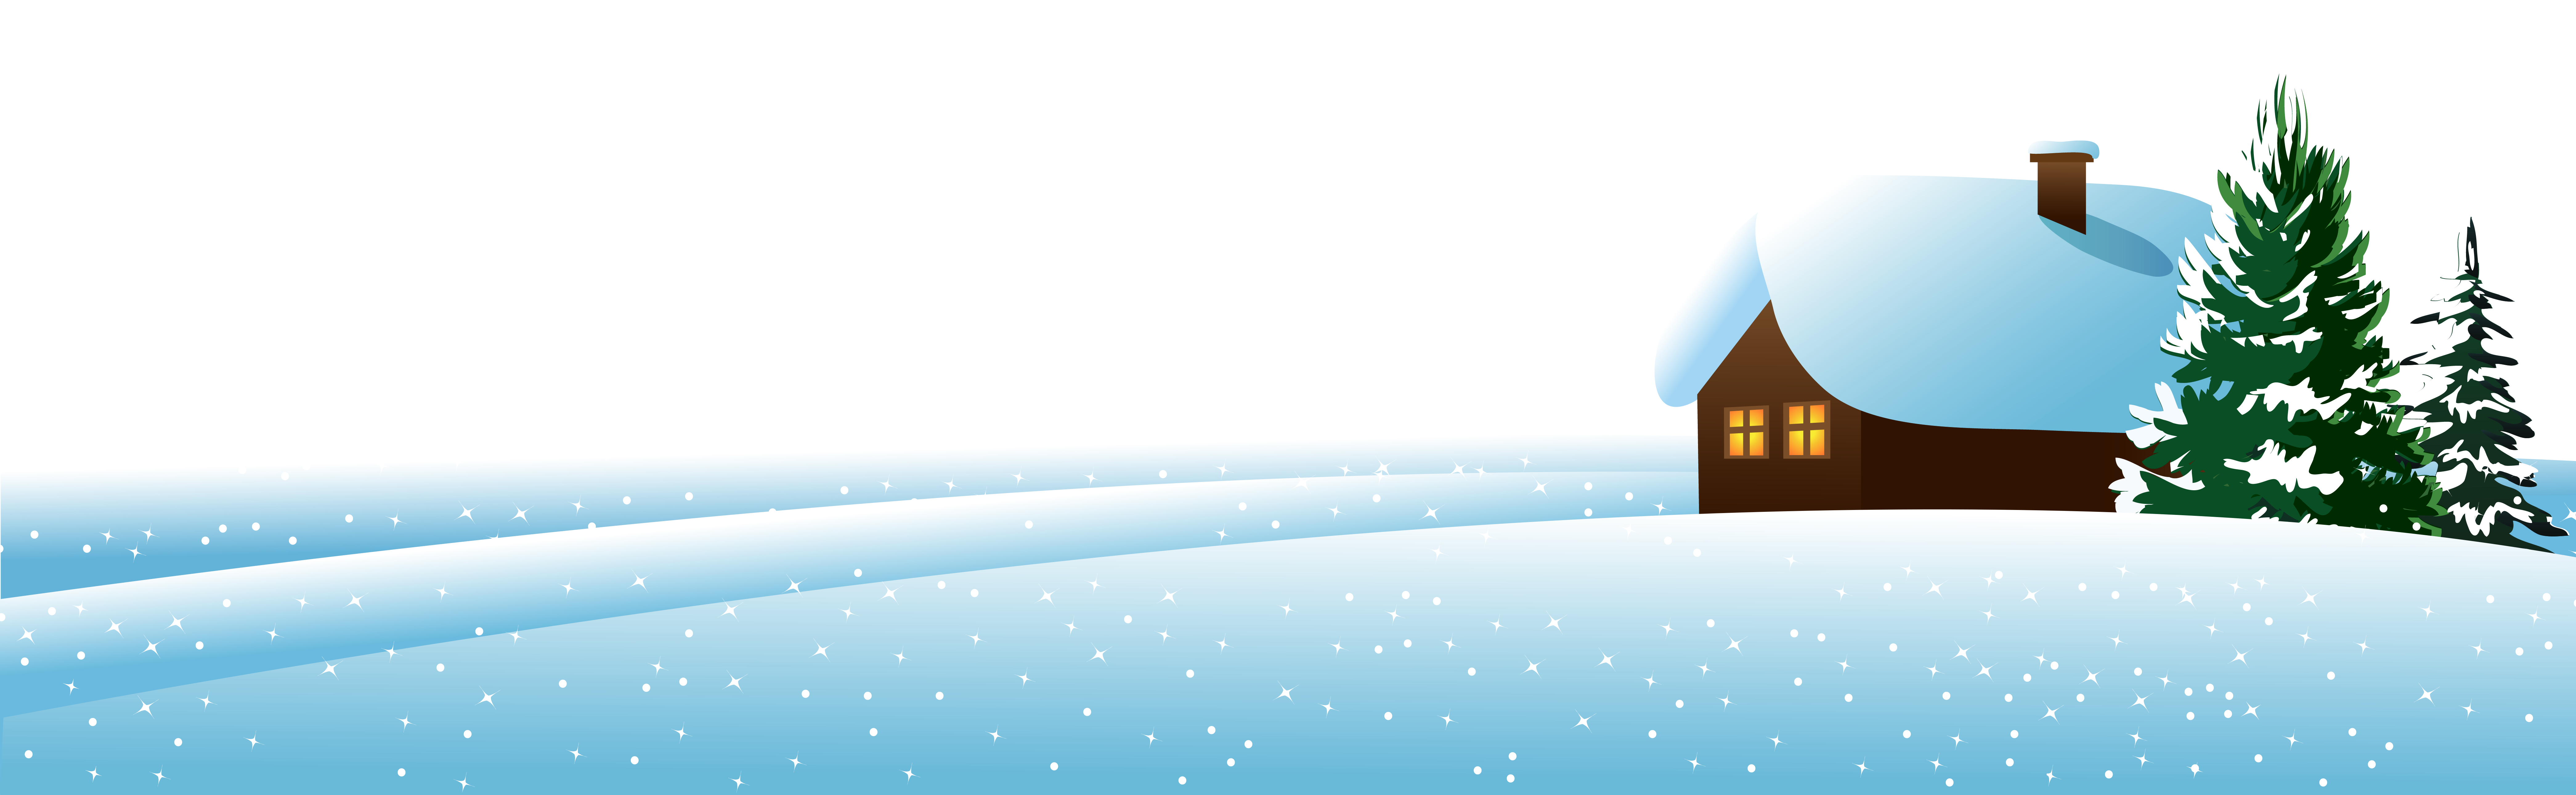 picture free House and rees ground. Winter clipart